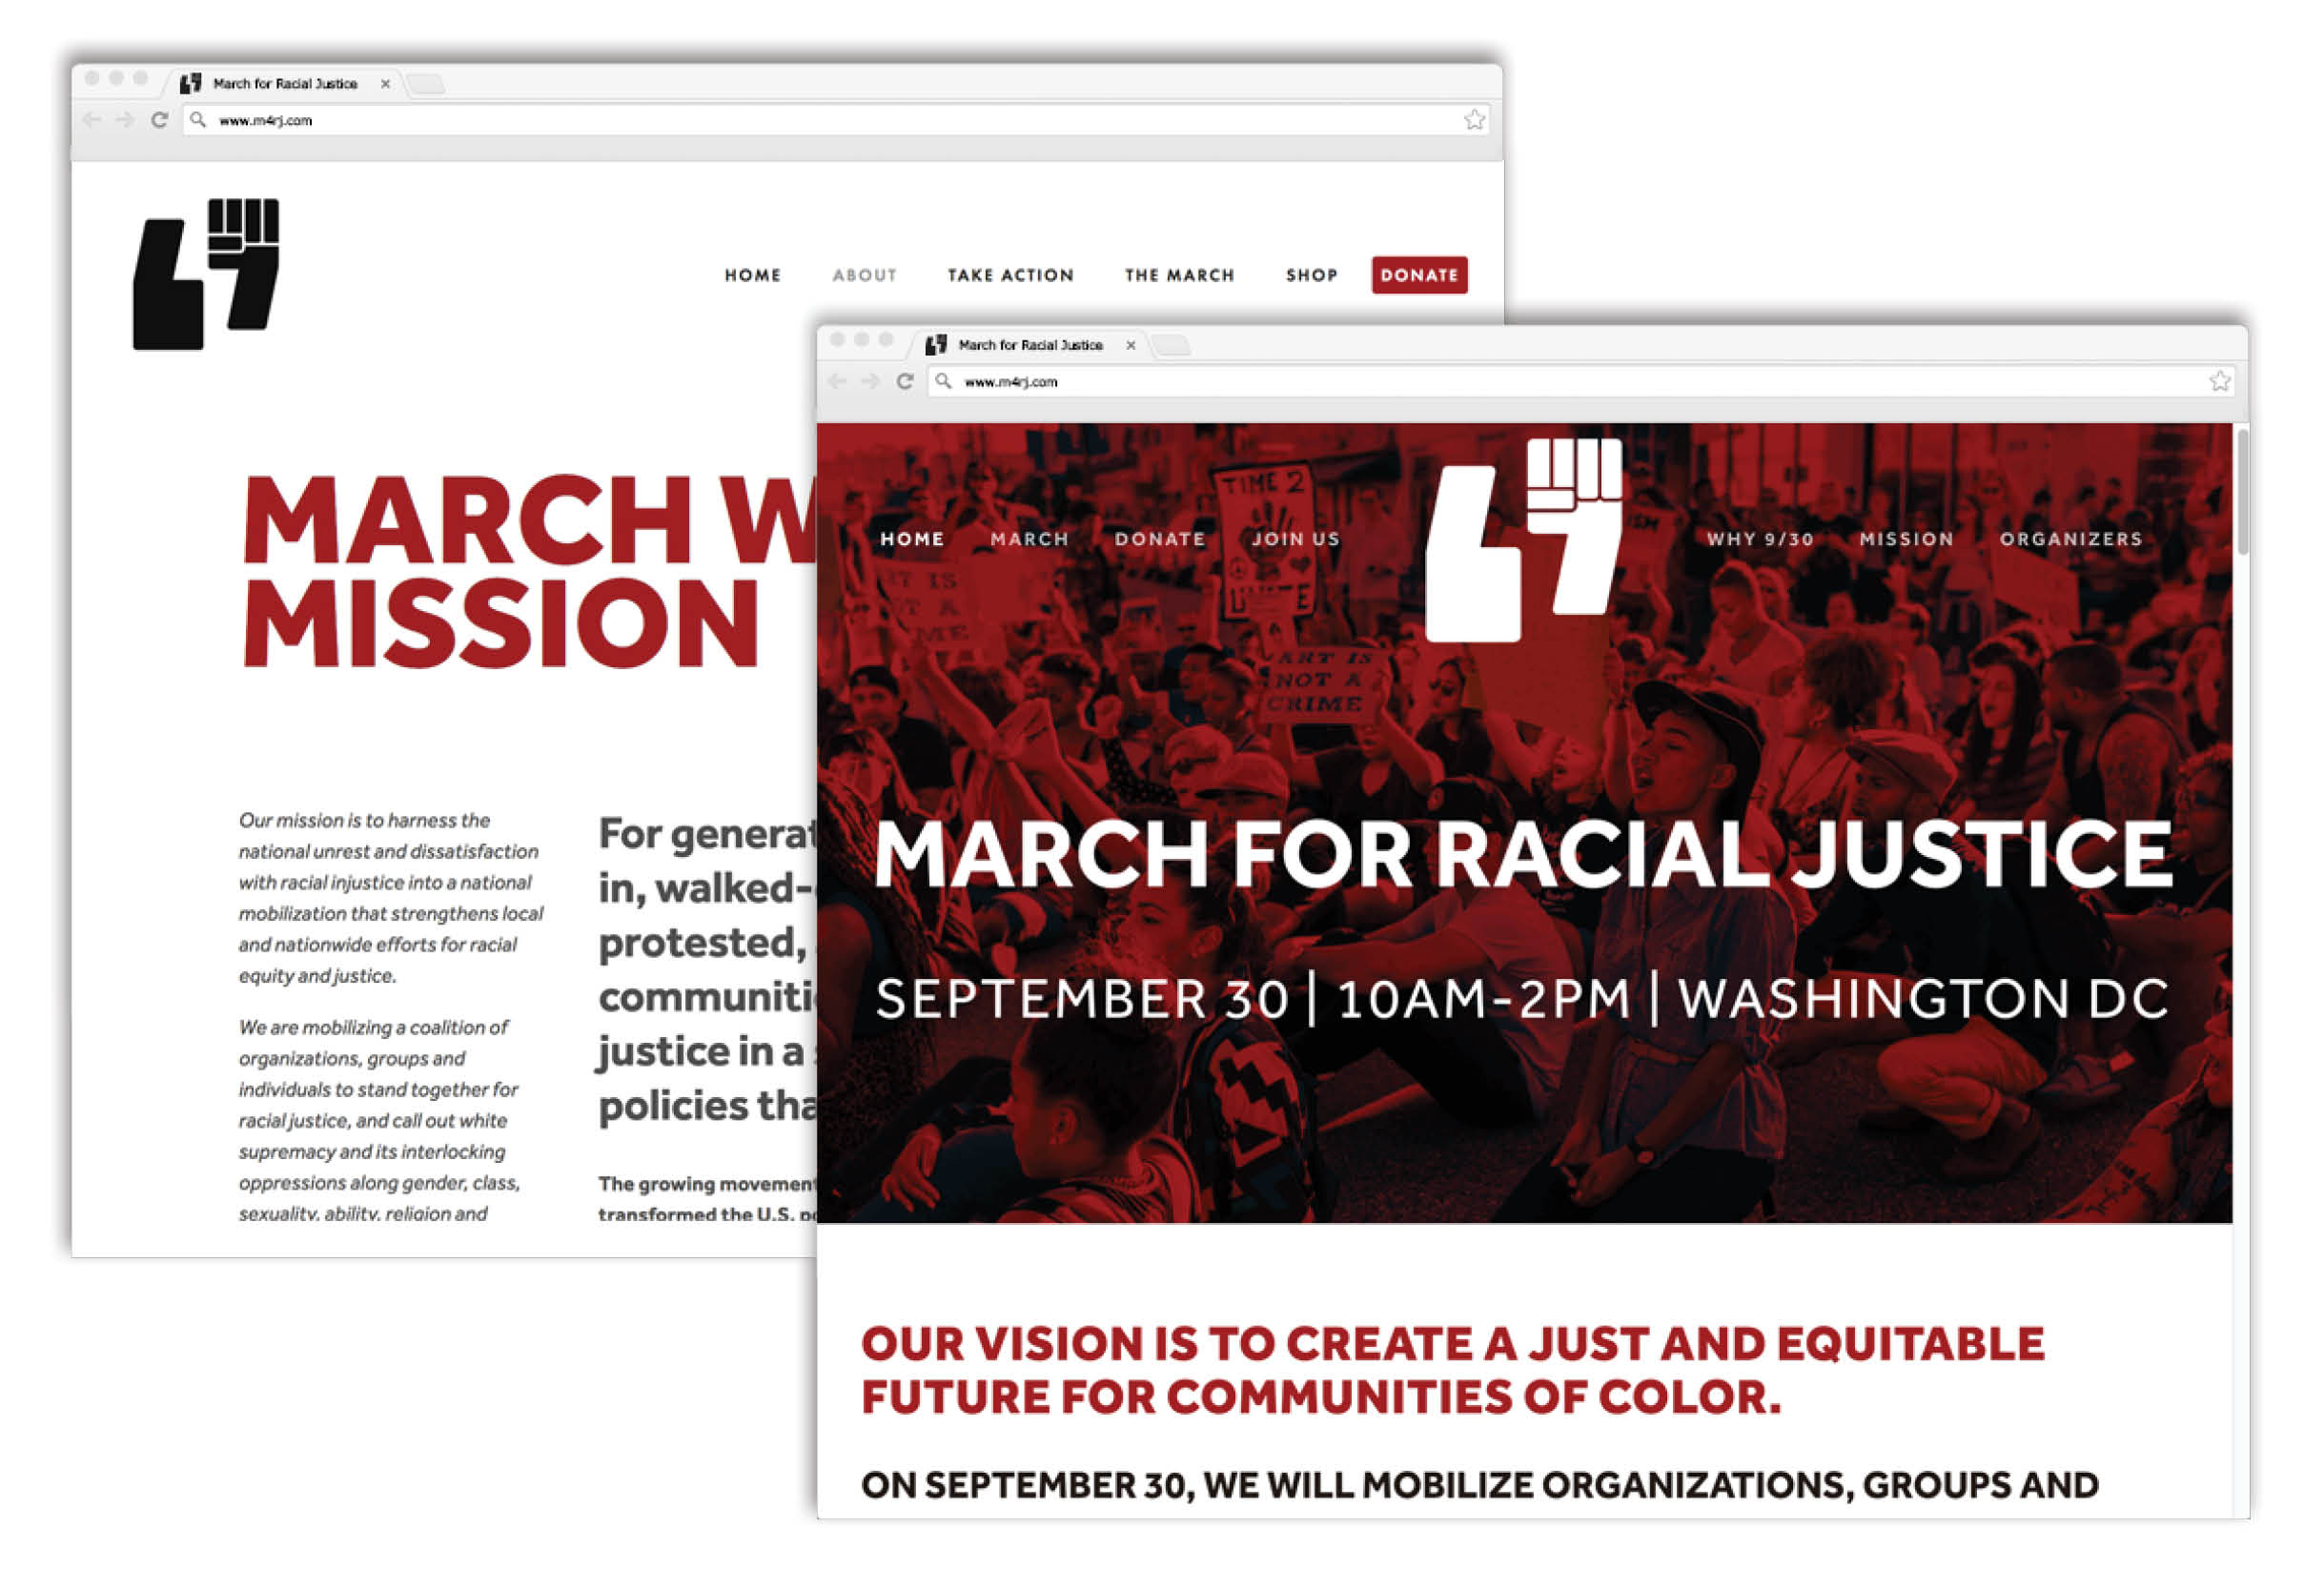 March for Racial Justice website, homepage and mission page